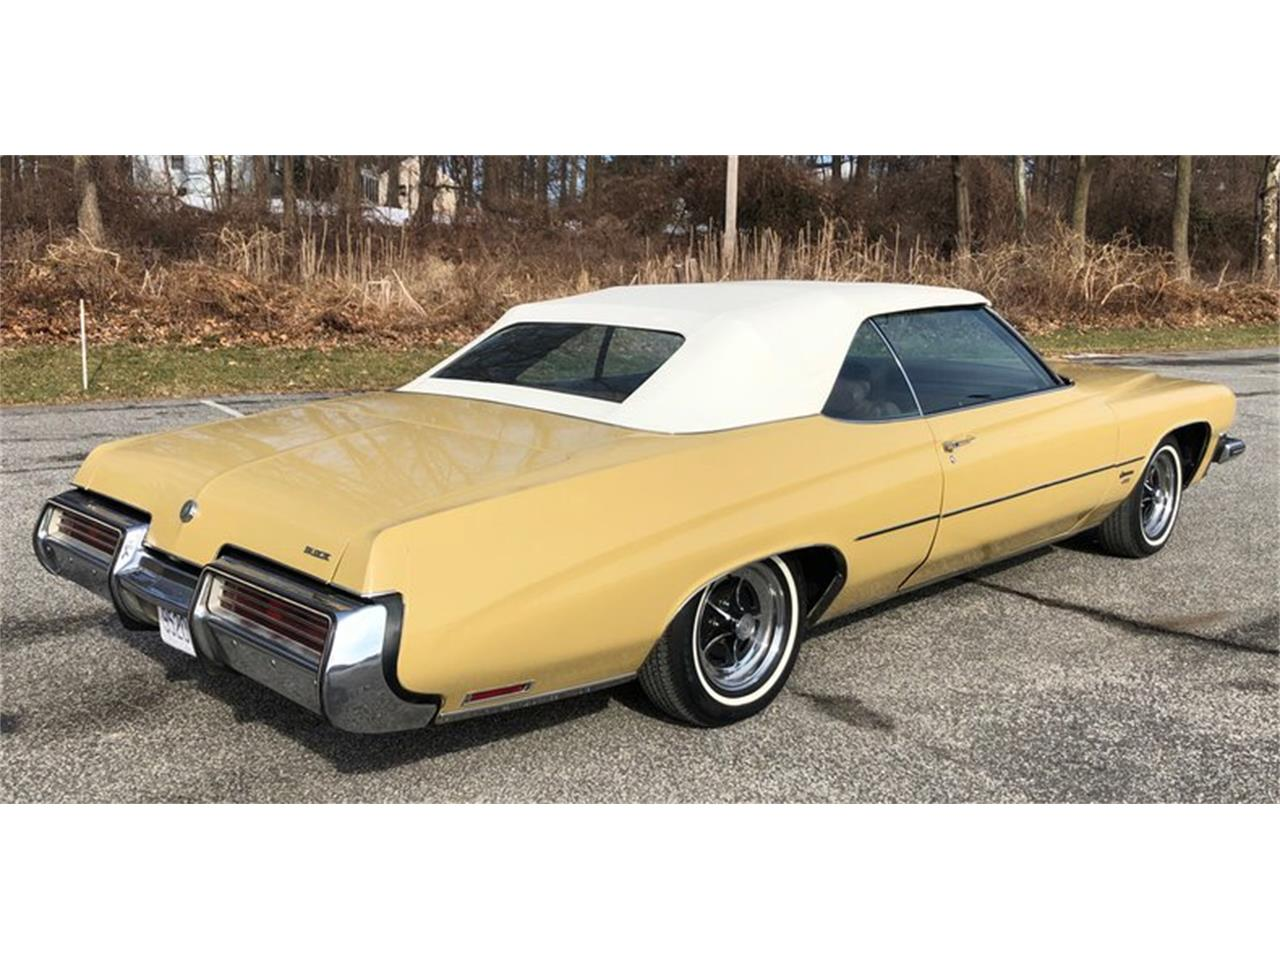 Large Picture of 1973 Buick Centurion located in Pennsylvania - $21,500.00 - PBP7